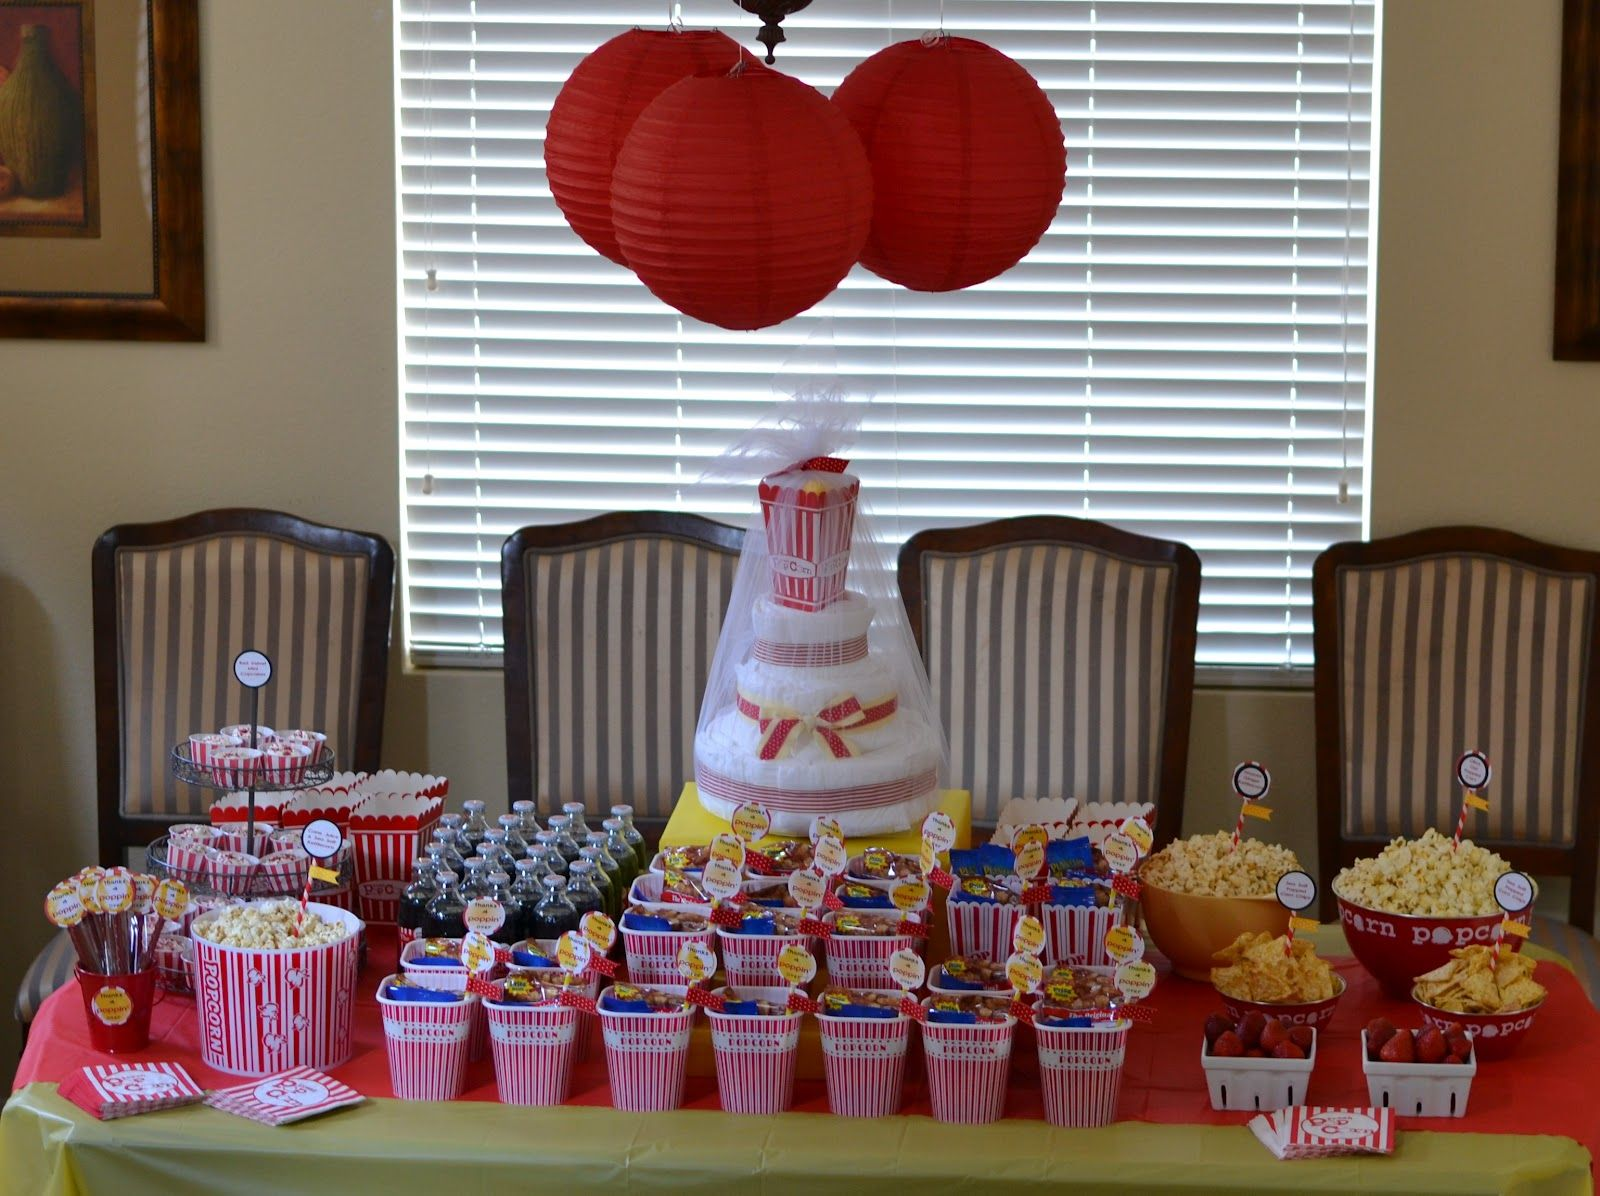 Shes About To Pop Baby Shower Ideas | Ready To Pop Baby Shower